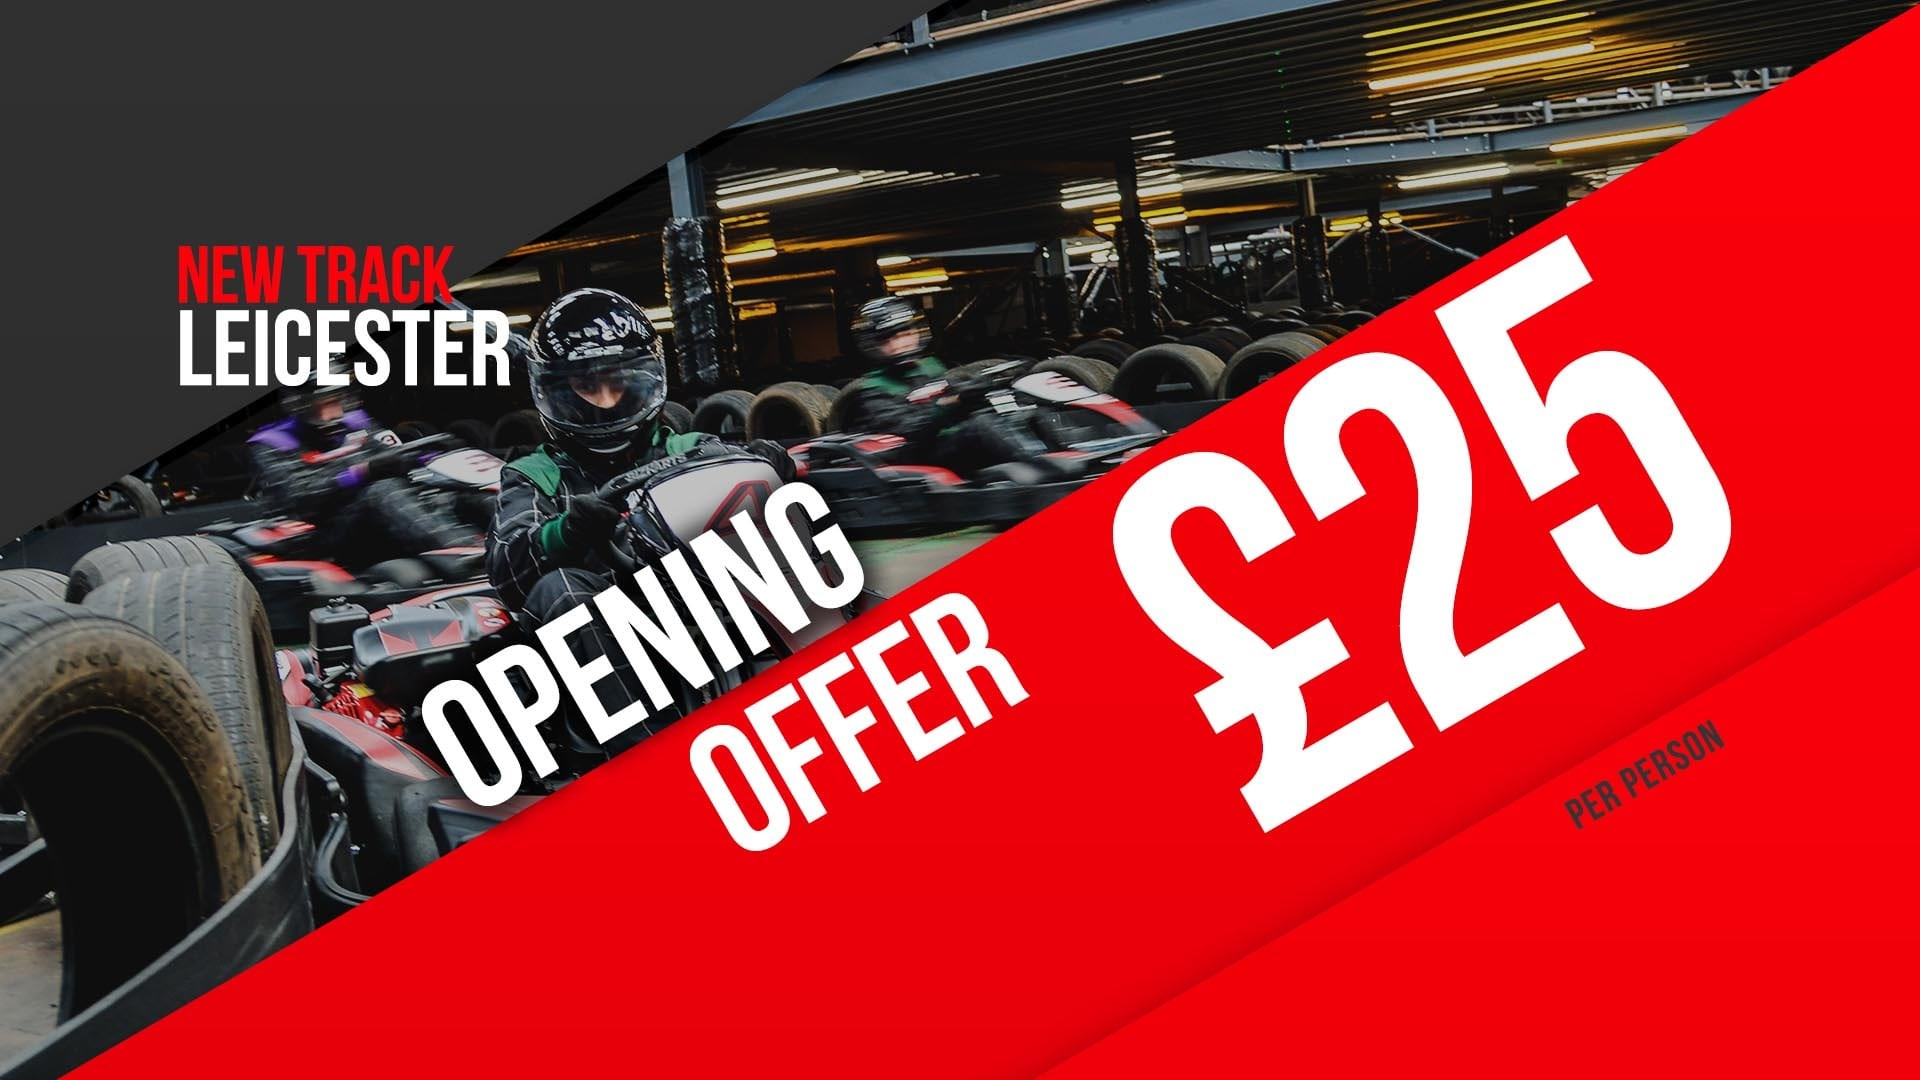 TeamSport_Go_Karting_Leicester_Opening_Offer_Full_Width_Offer_Banner_1920x1080-min.jpg